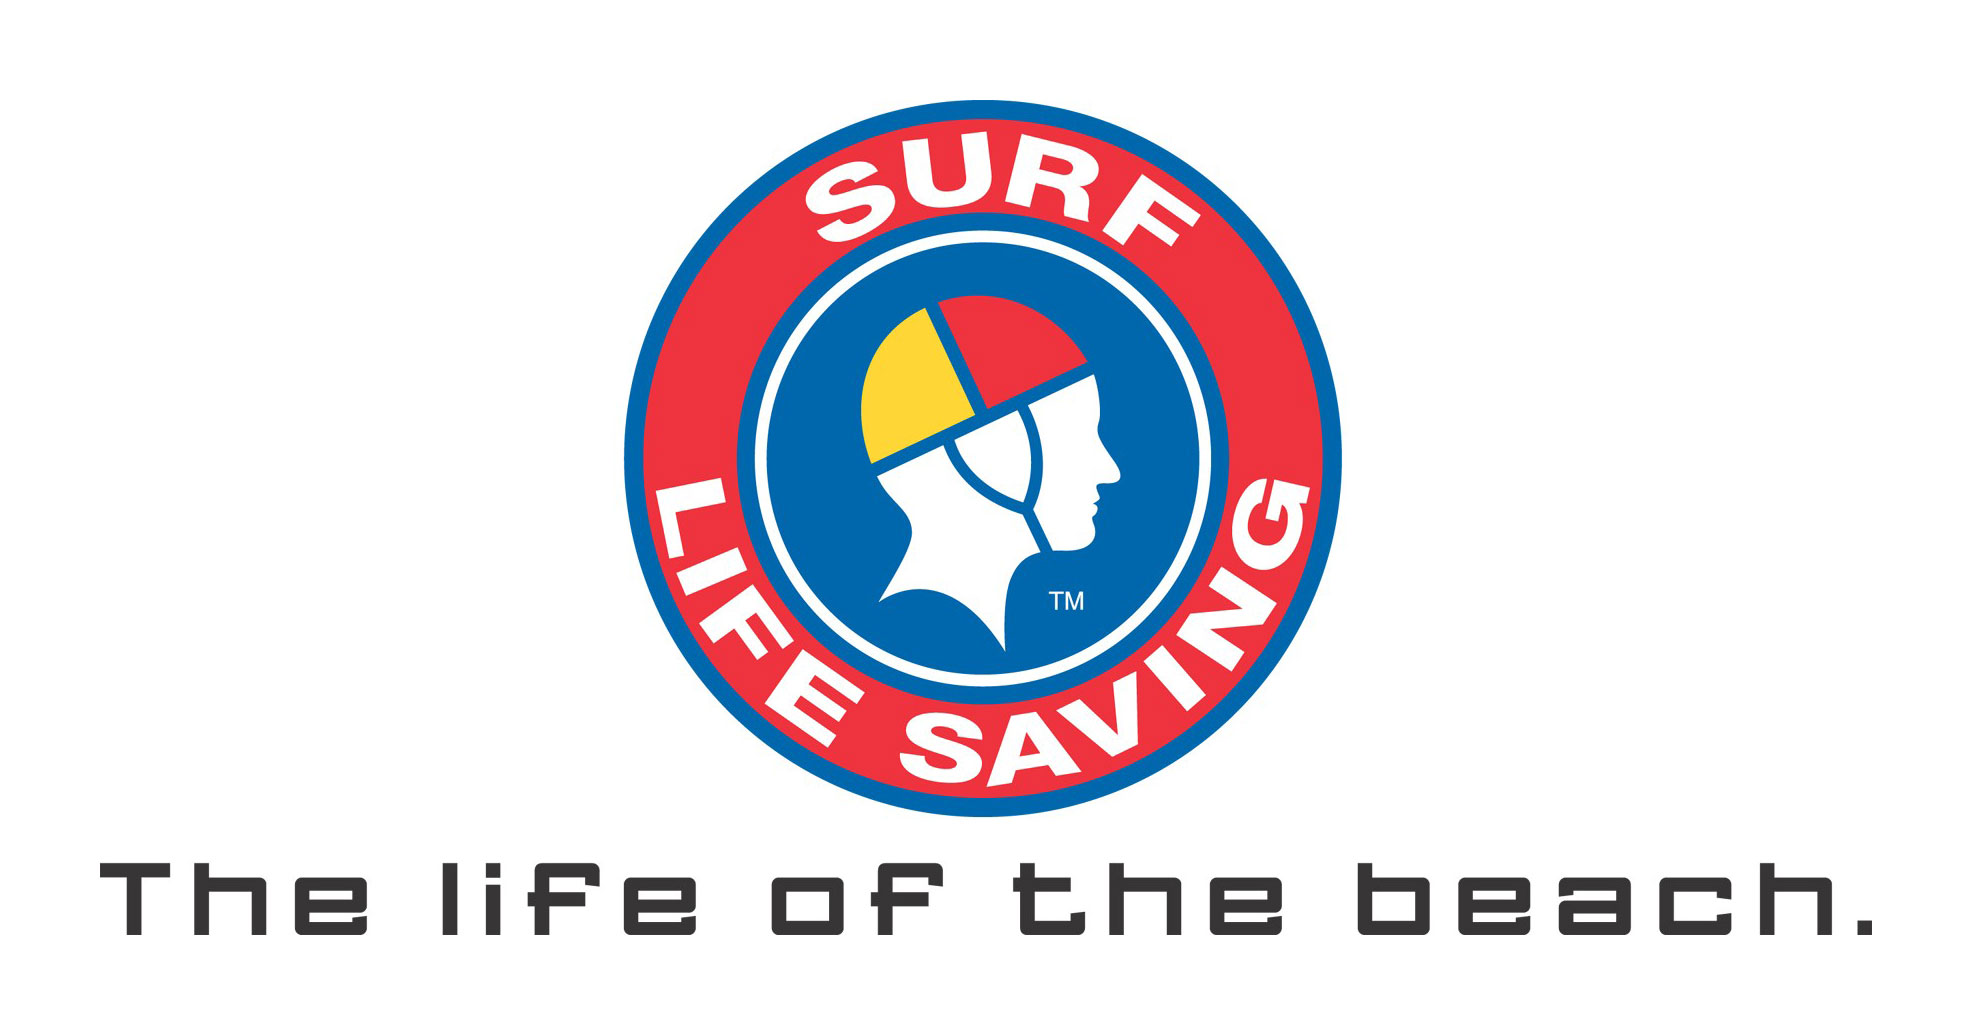 Surf Lifesaving Public Safety and Aquatic Rescue 34th edition